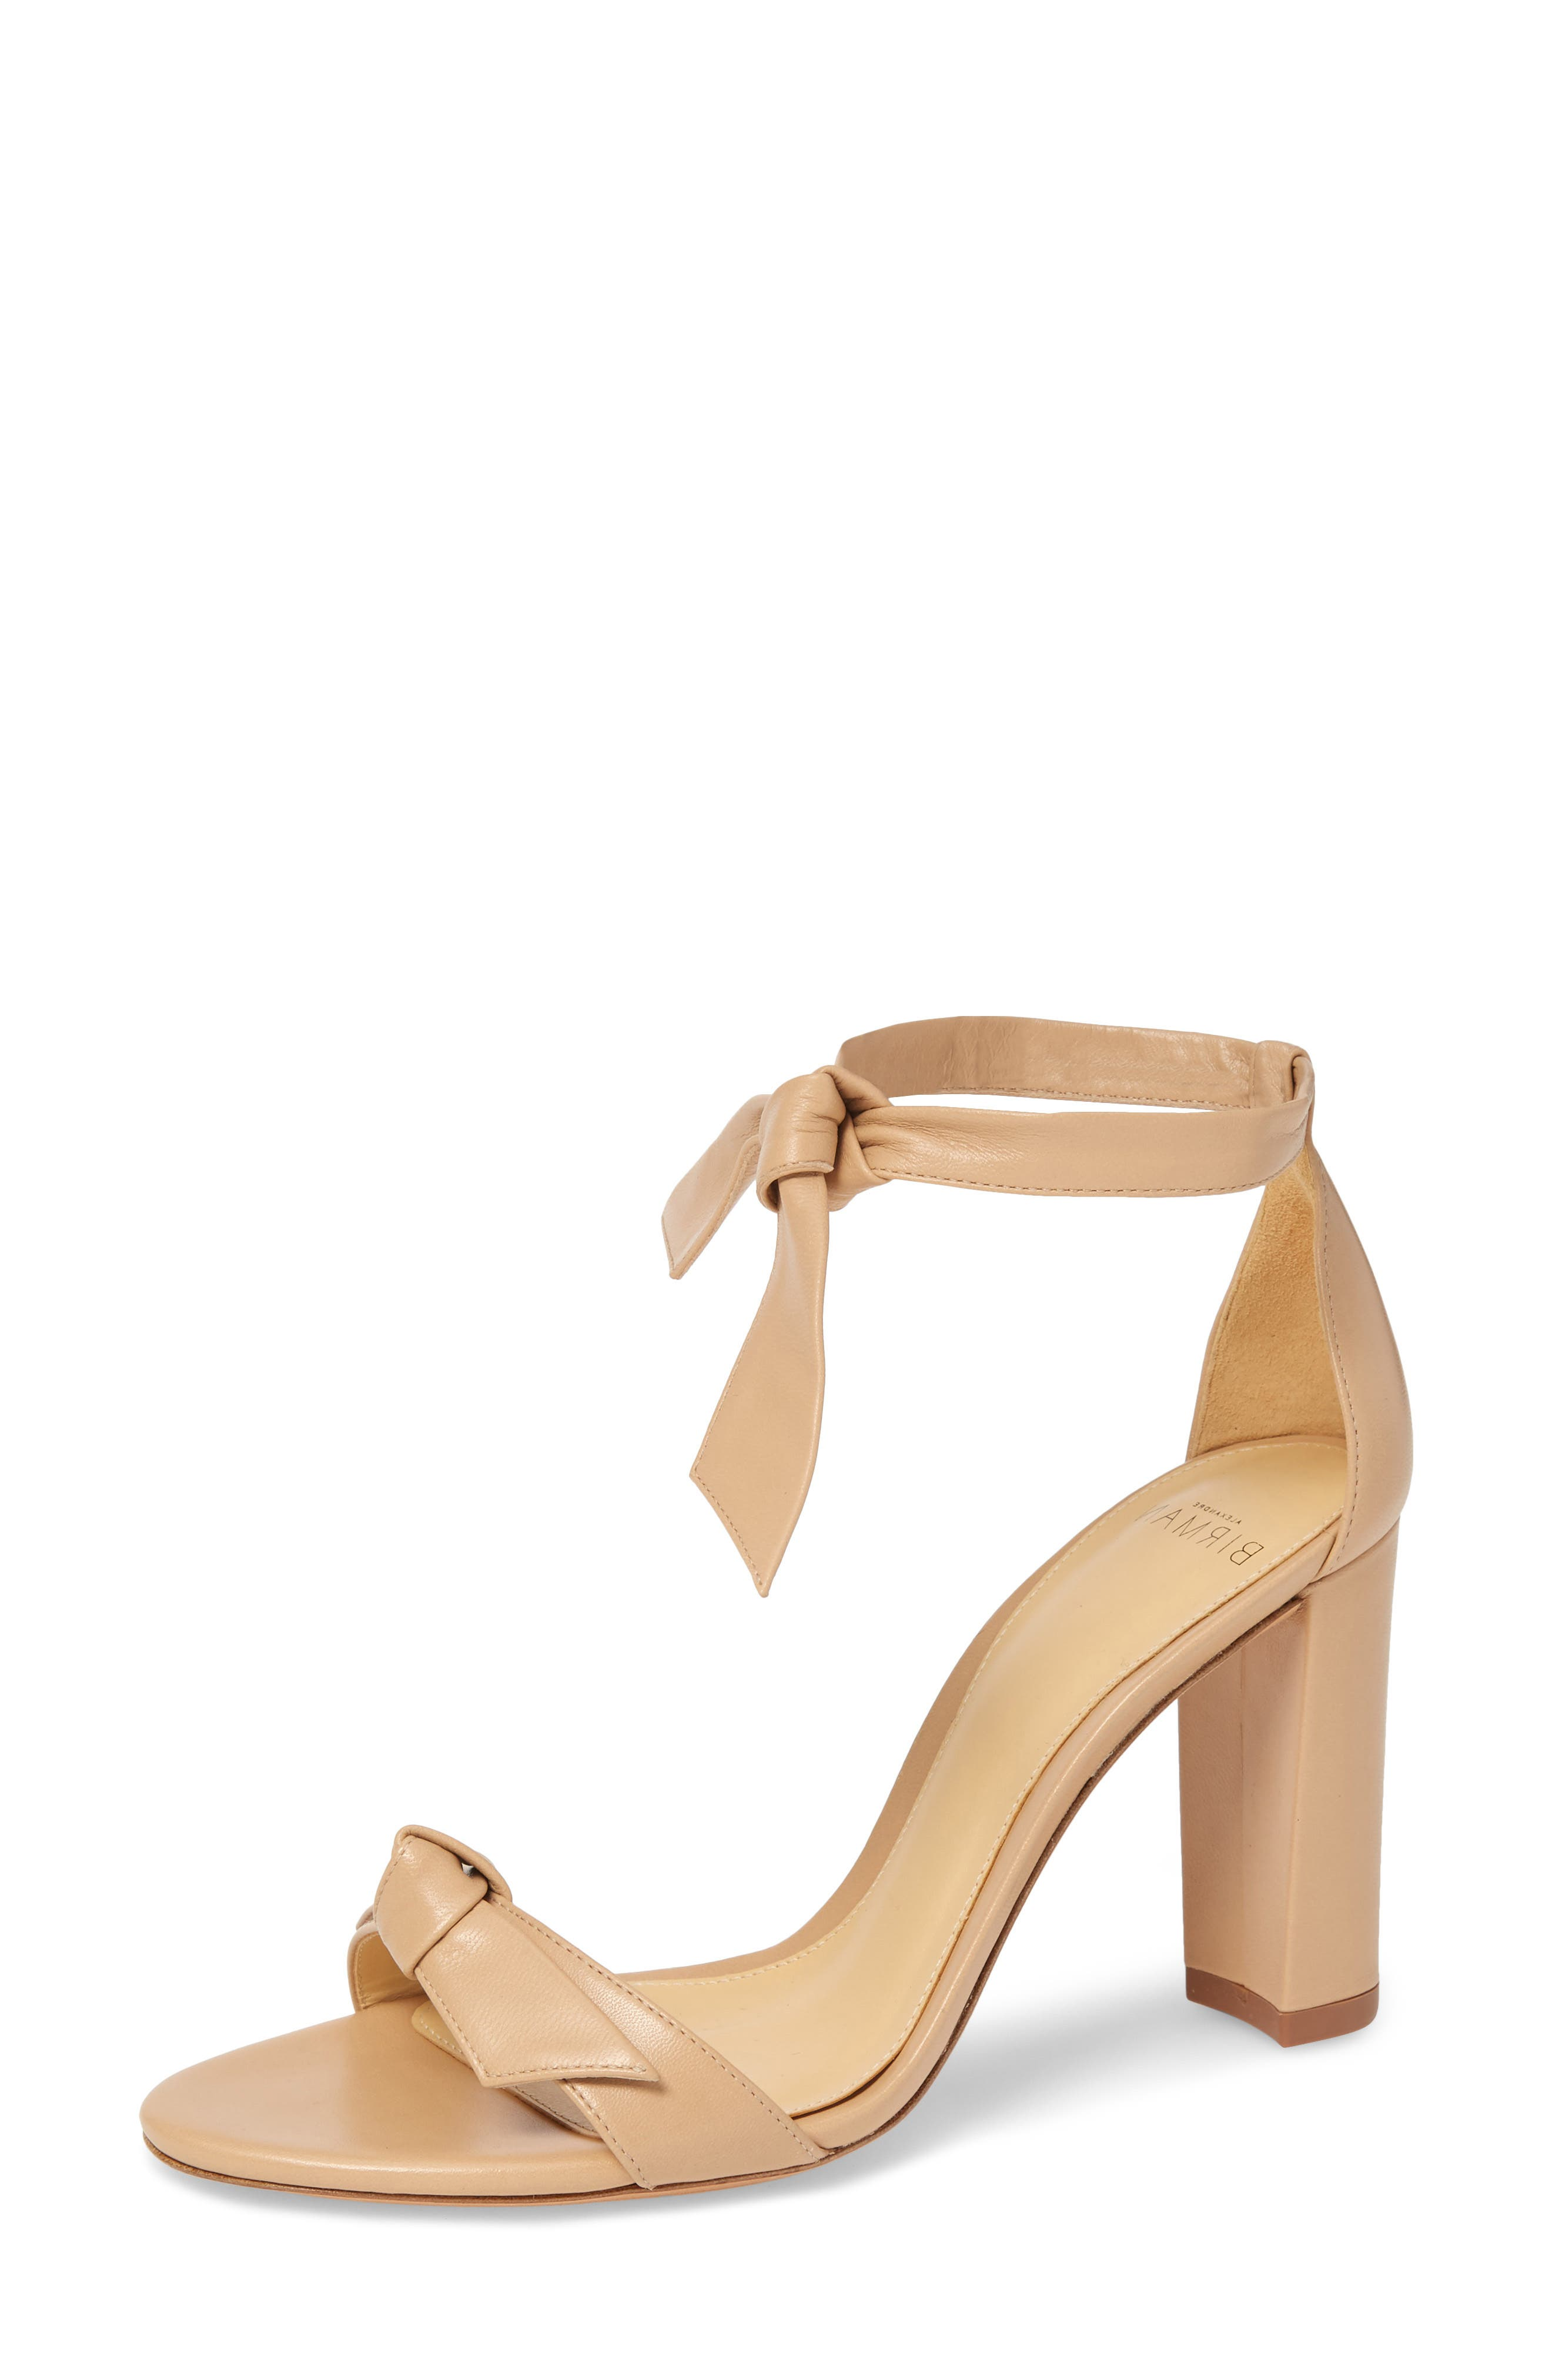 Clarita Knotted Sandal,                             Main thumbnail 1, color,                             NUDE LEATHER